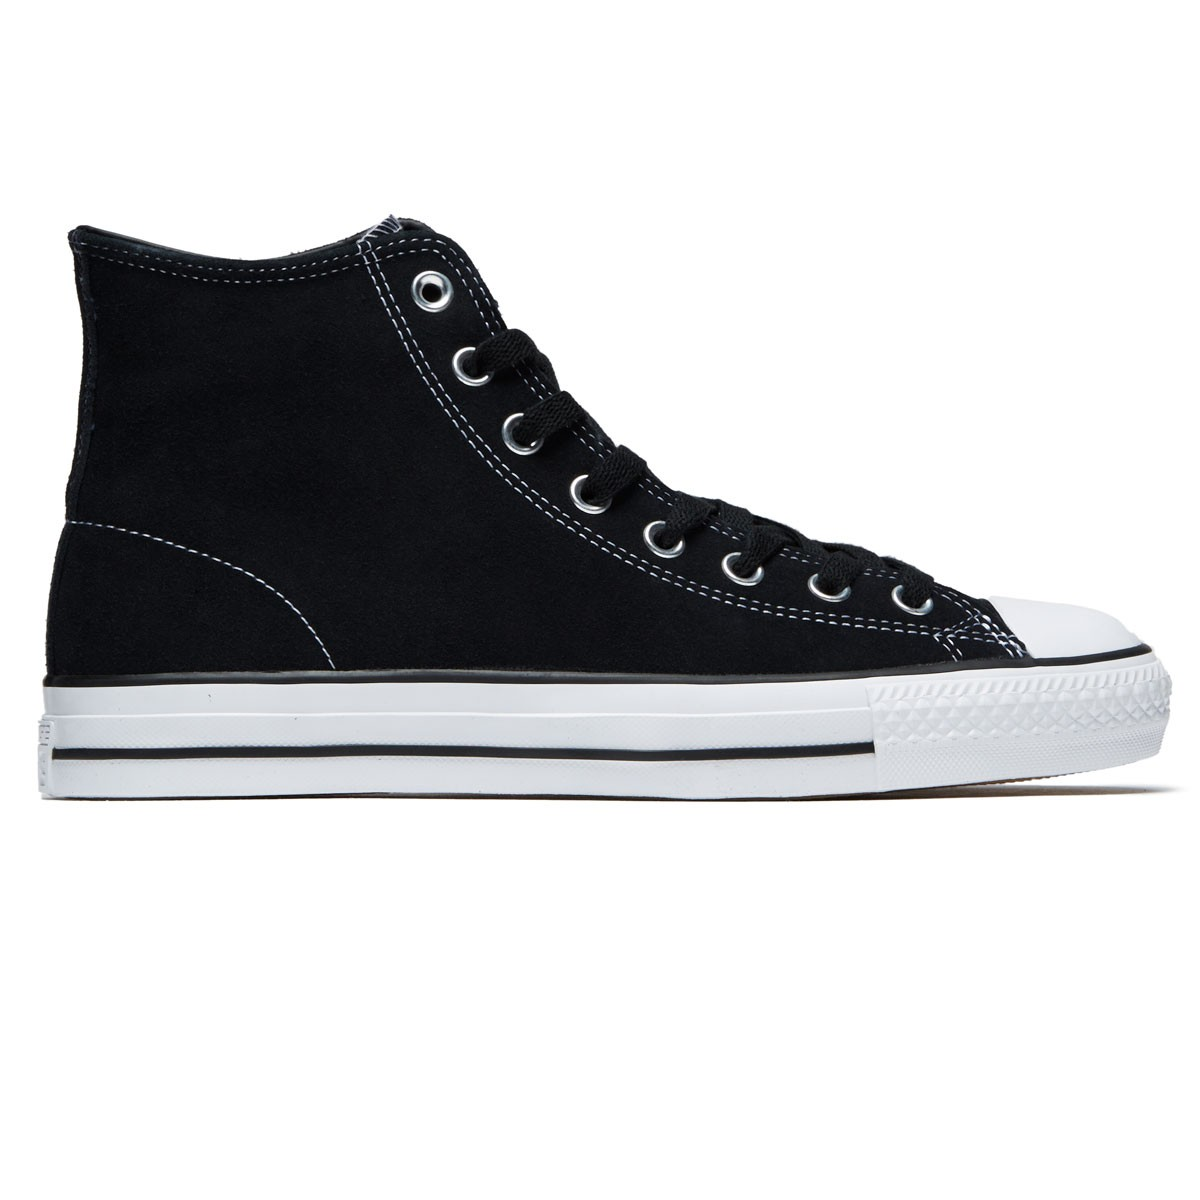 e01b4107ec8b9b Converse Zoom Air CTAS Pro Hi Shoes - Black Black White - 10.0